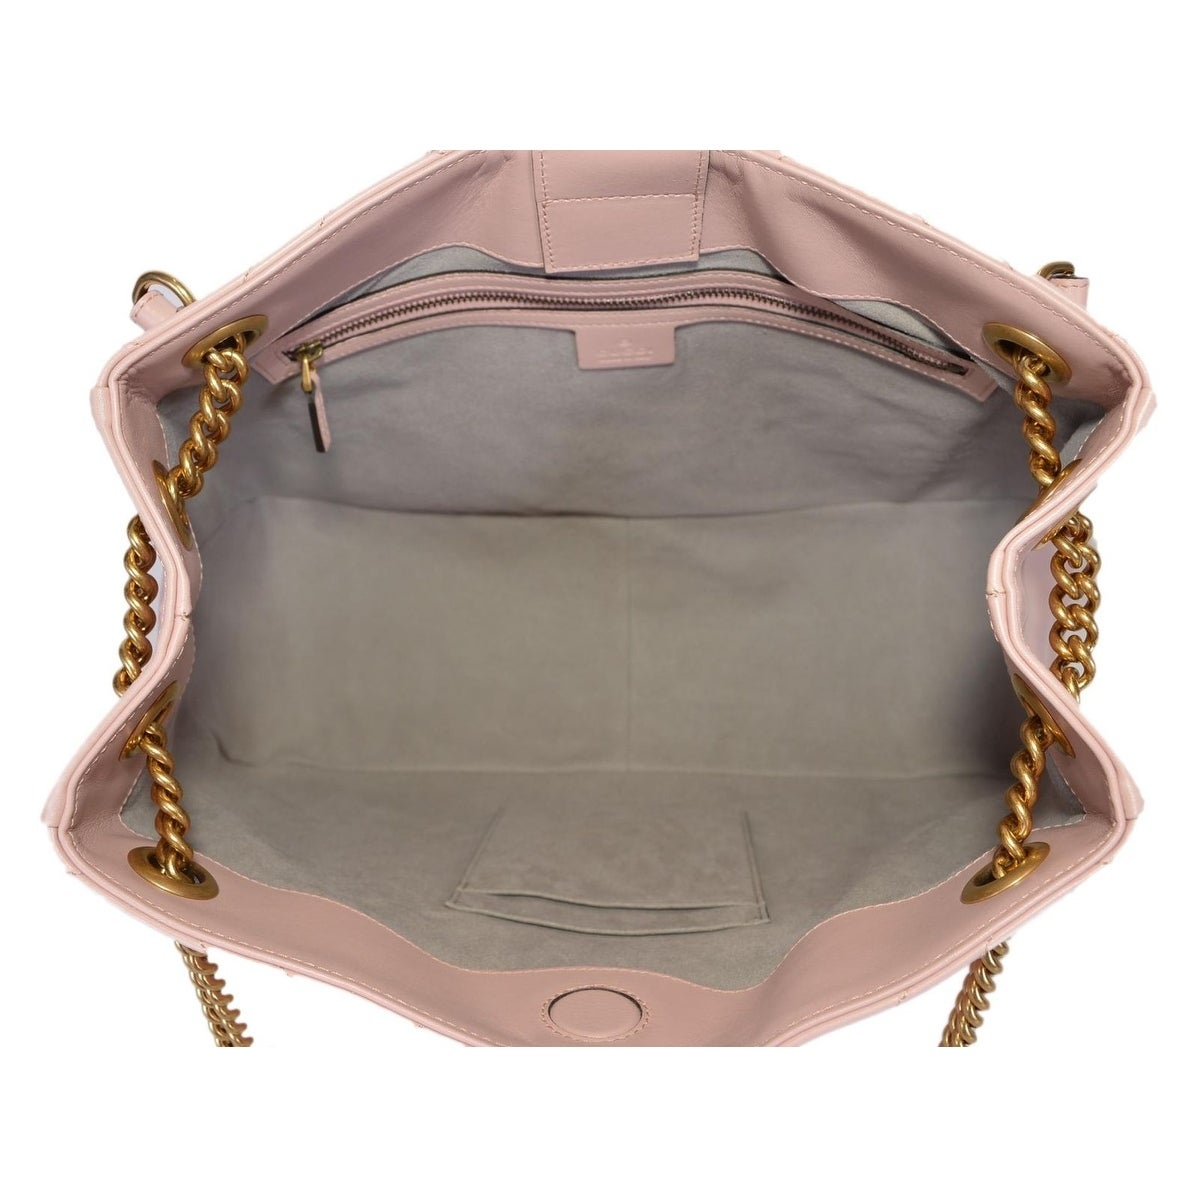 40b14bbca7a8 Shop Gucci Pink Chevron Leather Marmont GG Tote Purse Shoulder Bag - Free  Shipping Today - Overstock - 25461564